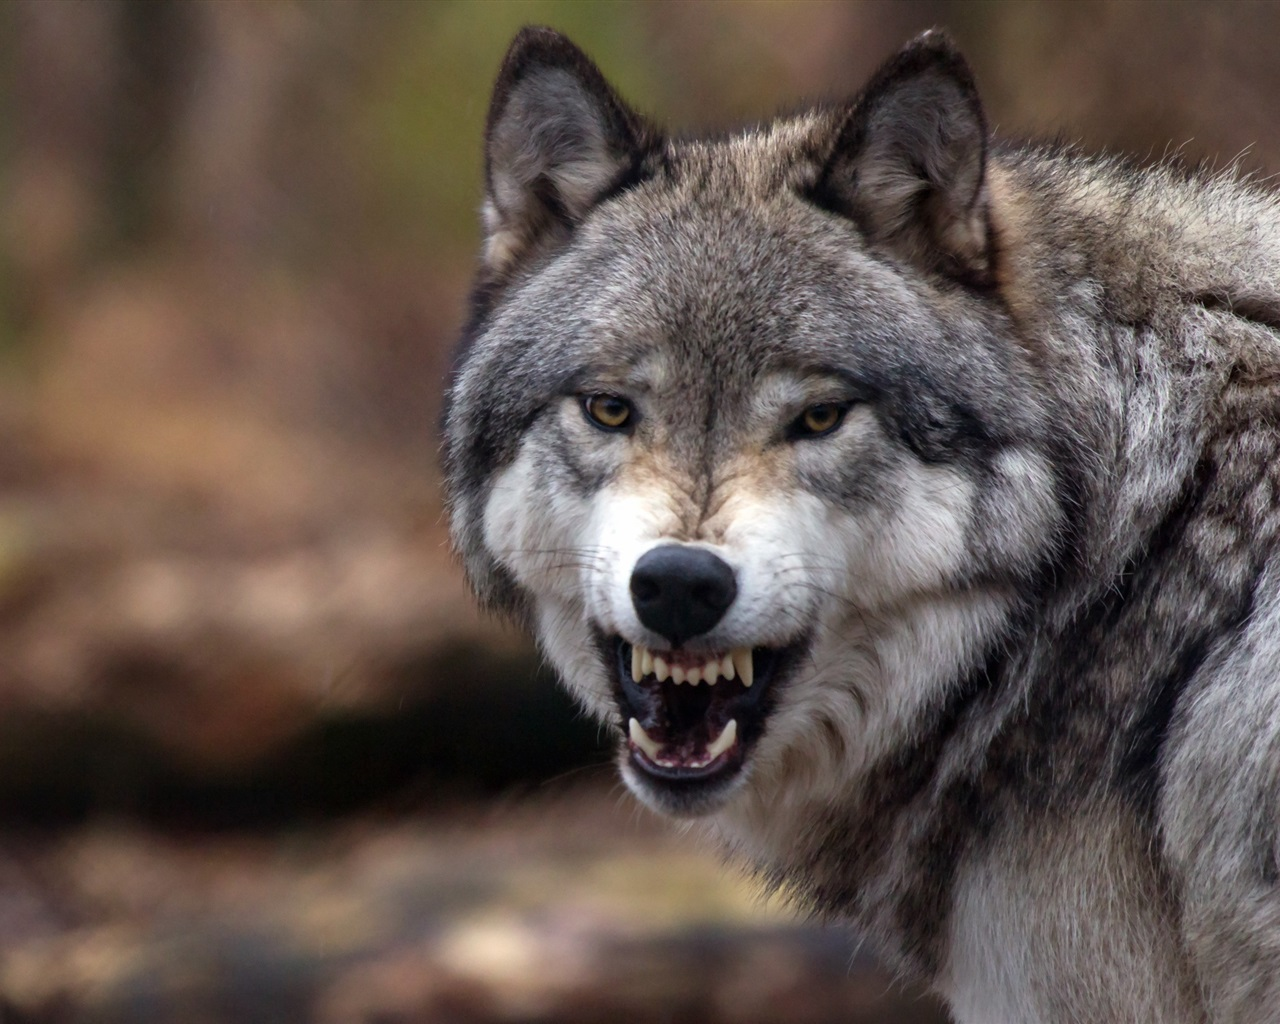 Wallpaper Wolf close-up, grin, angry, forest 2560x1600 HD ... | 1280 x 1024 jpeg 346kB